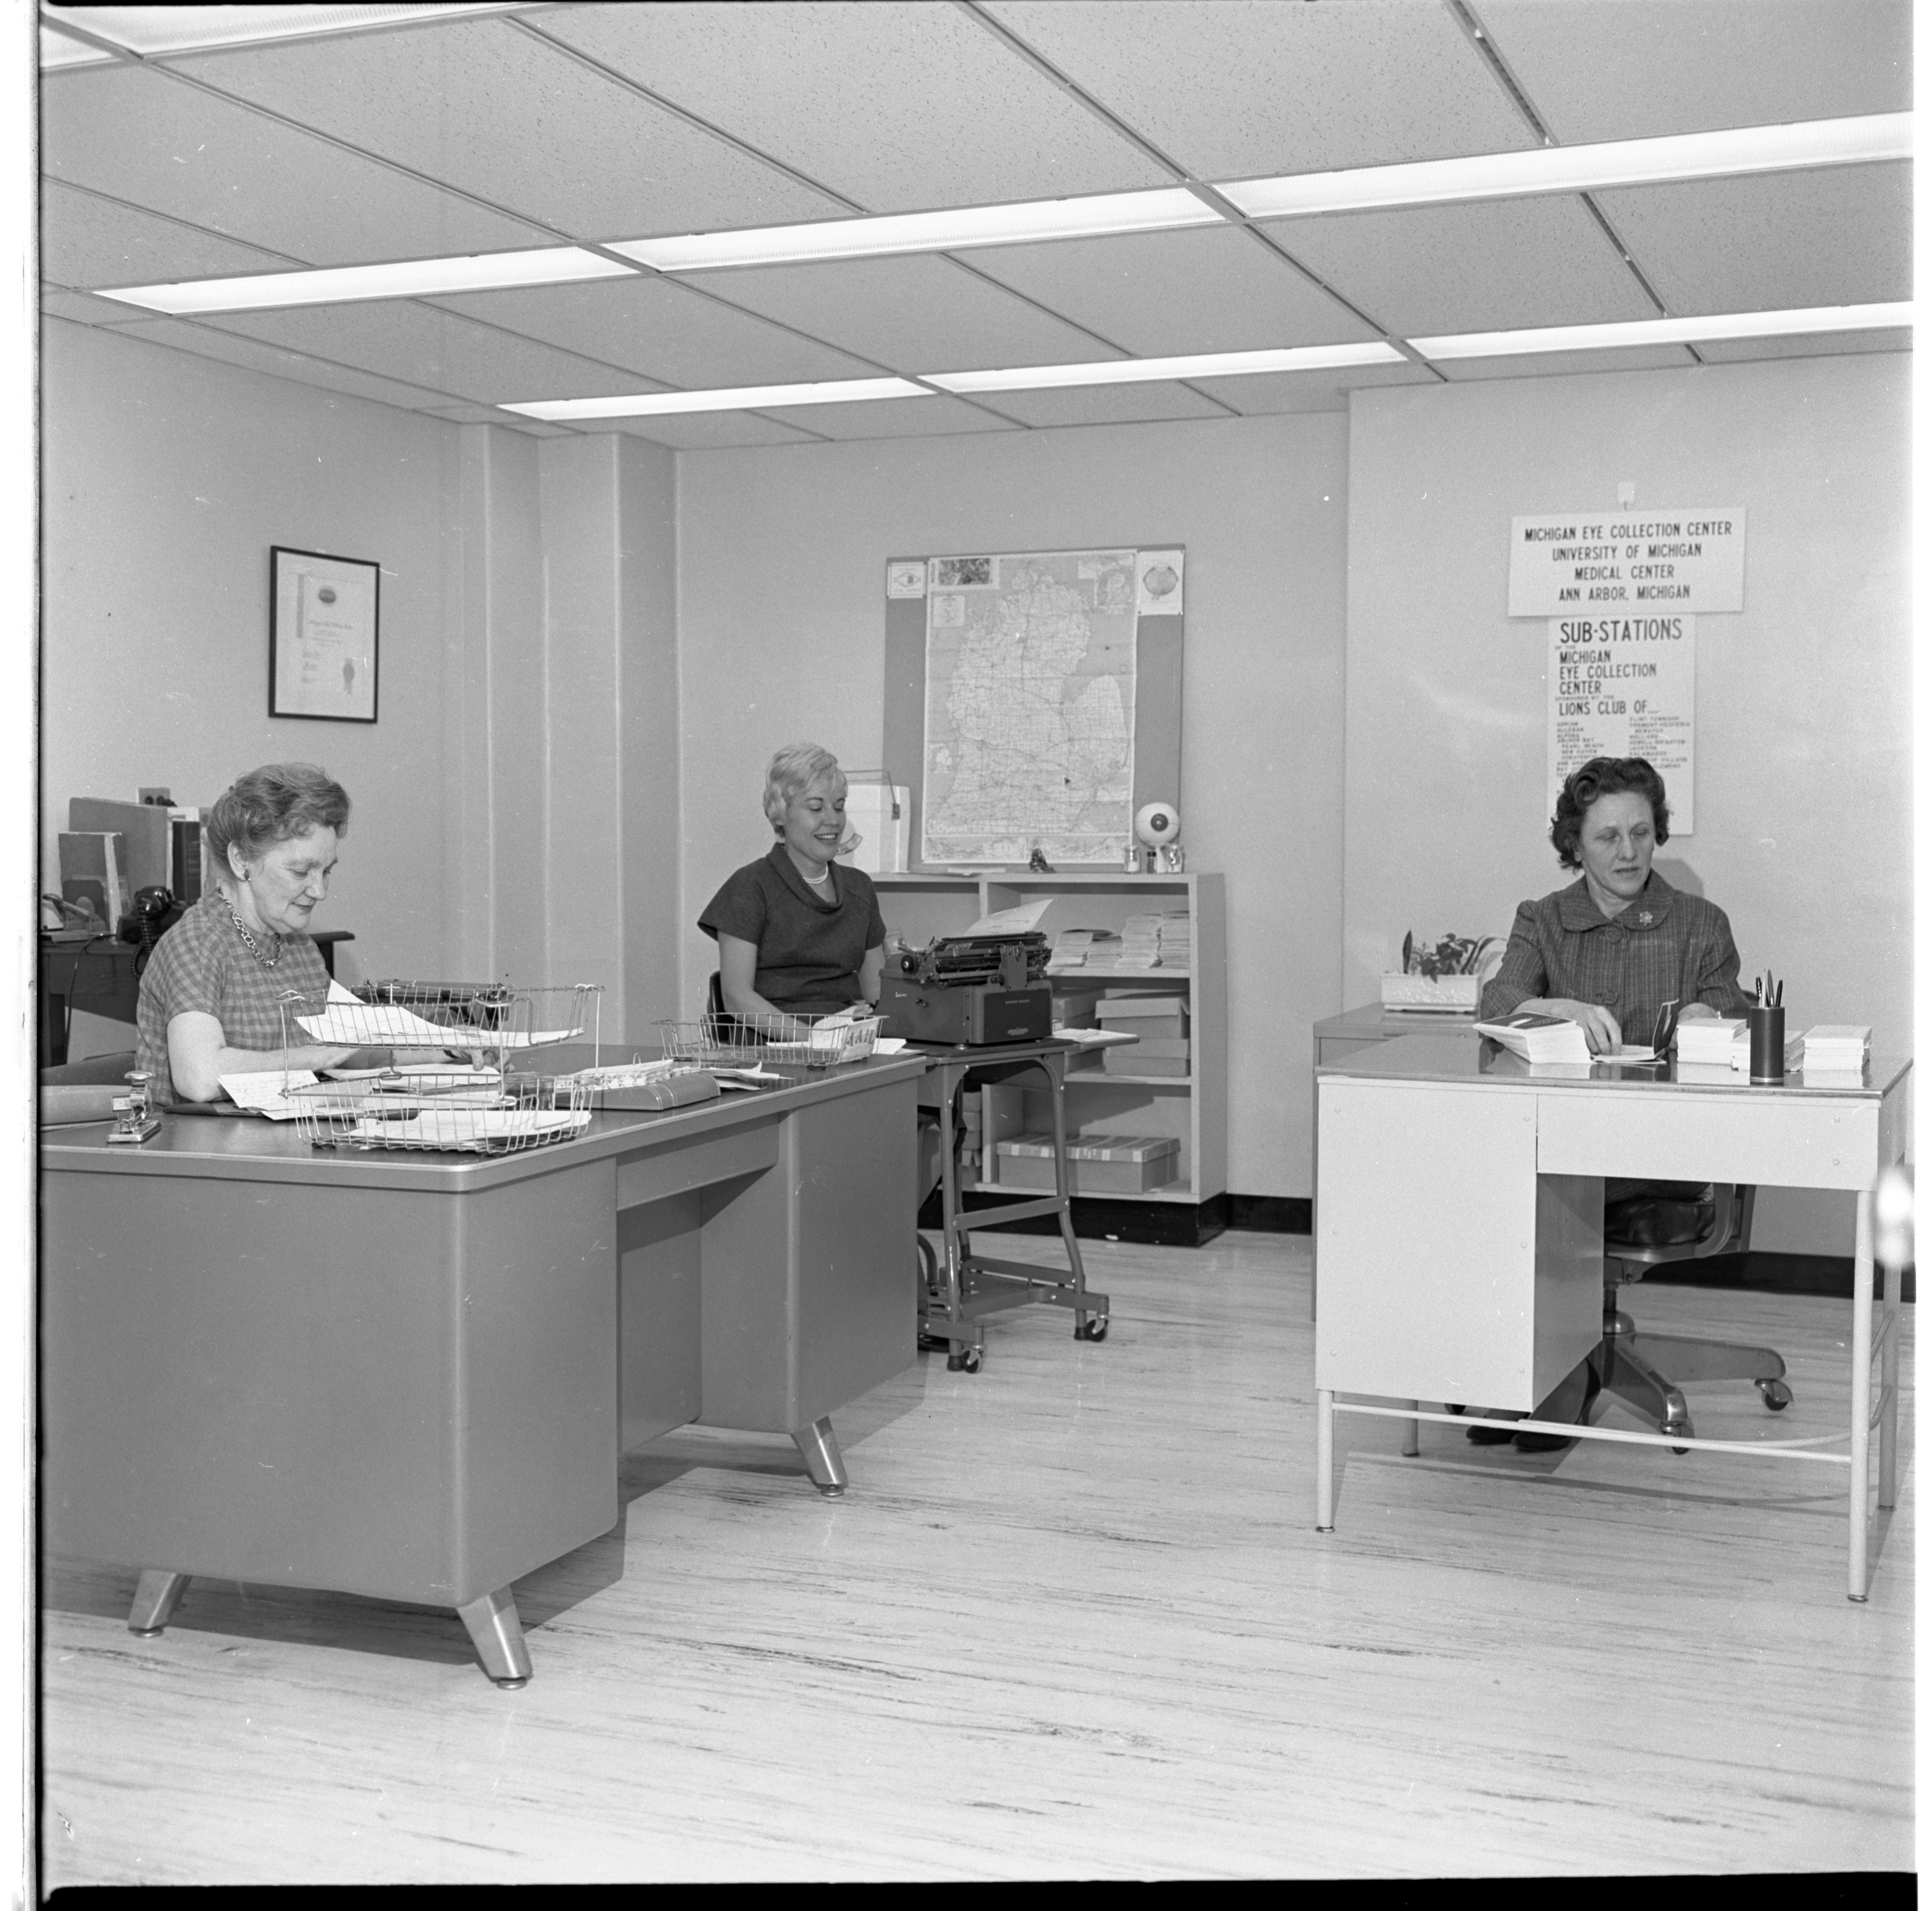 Mary Hubbell, Frances Staffan, & Margaret Gillen, Work In The Michigan Eye Collection Center Office, March 1965 image